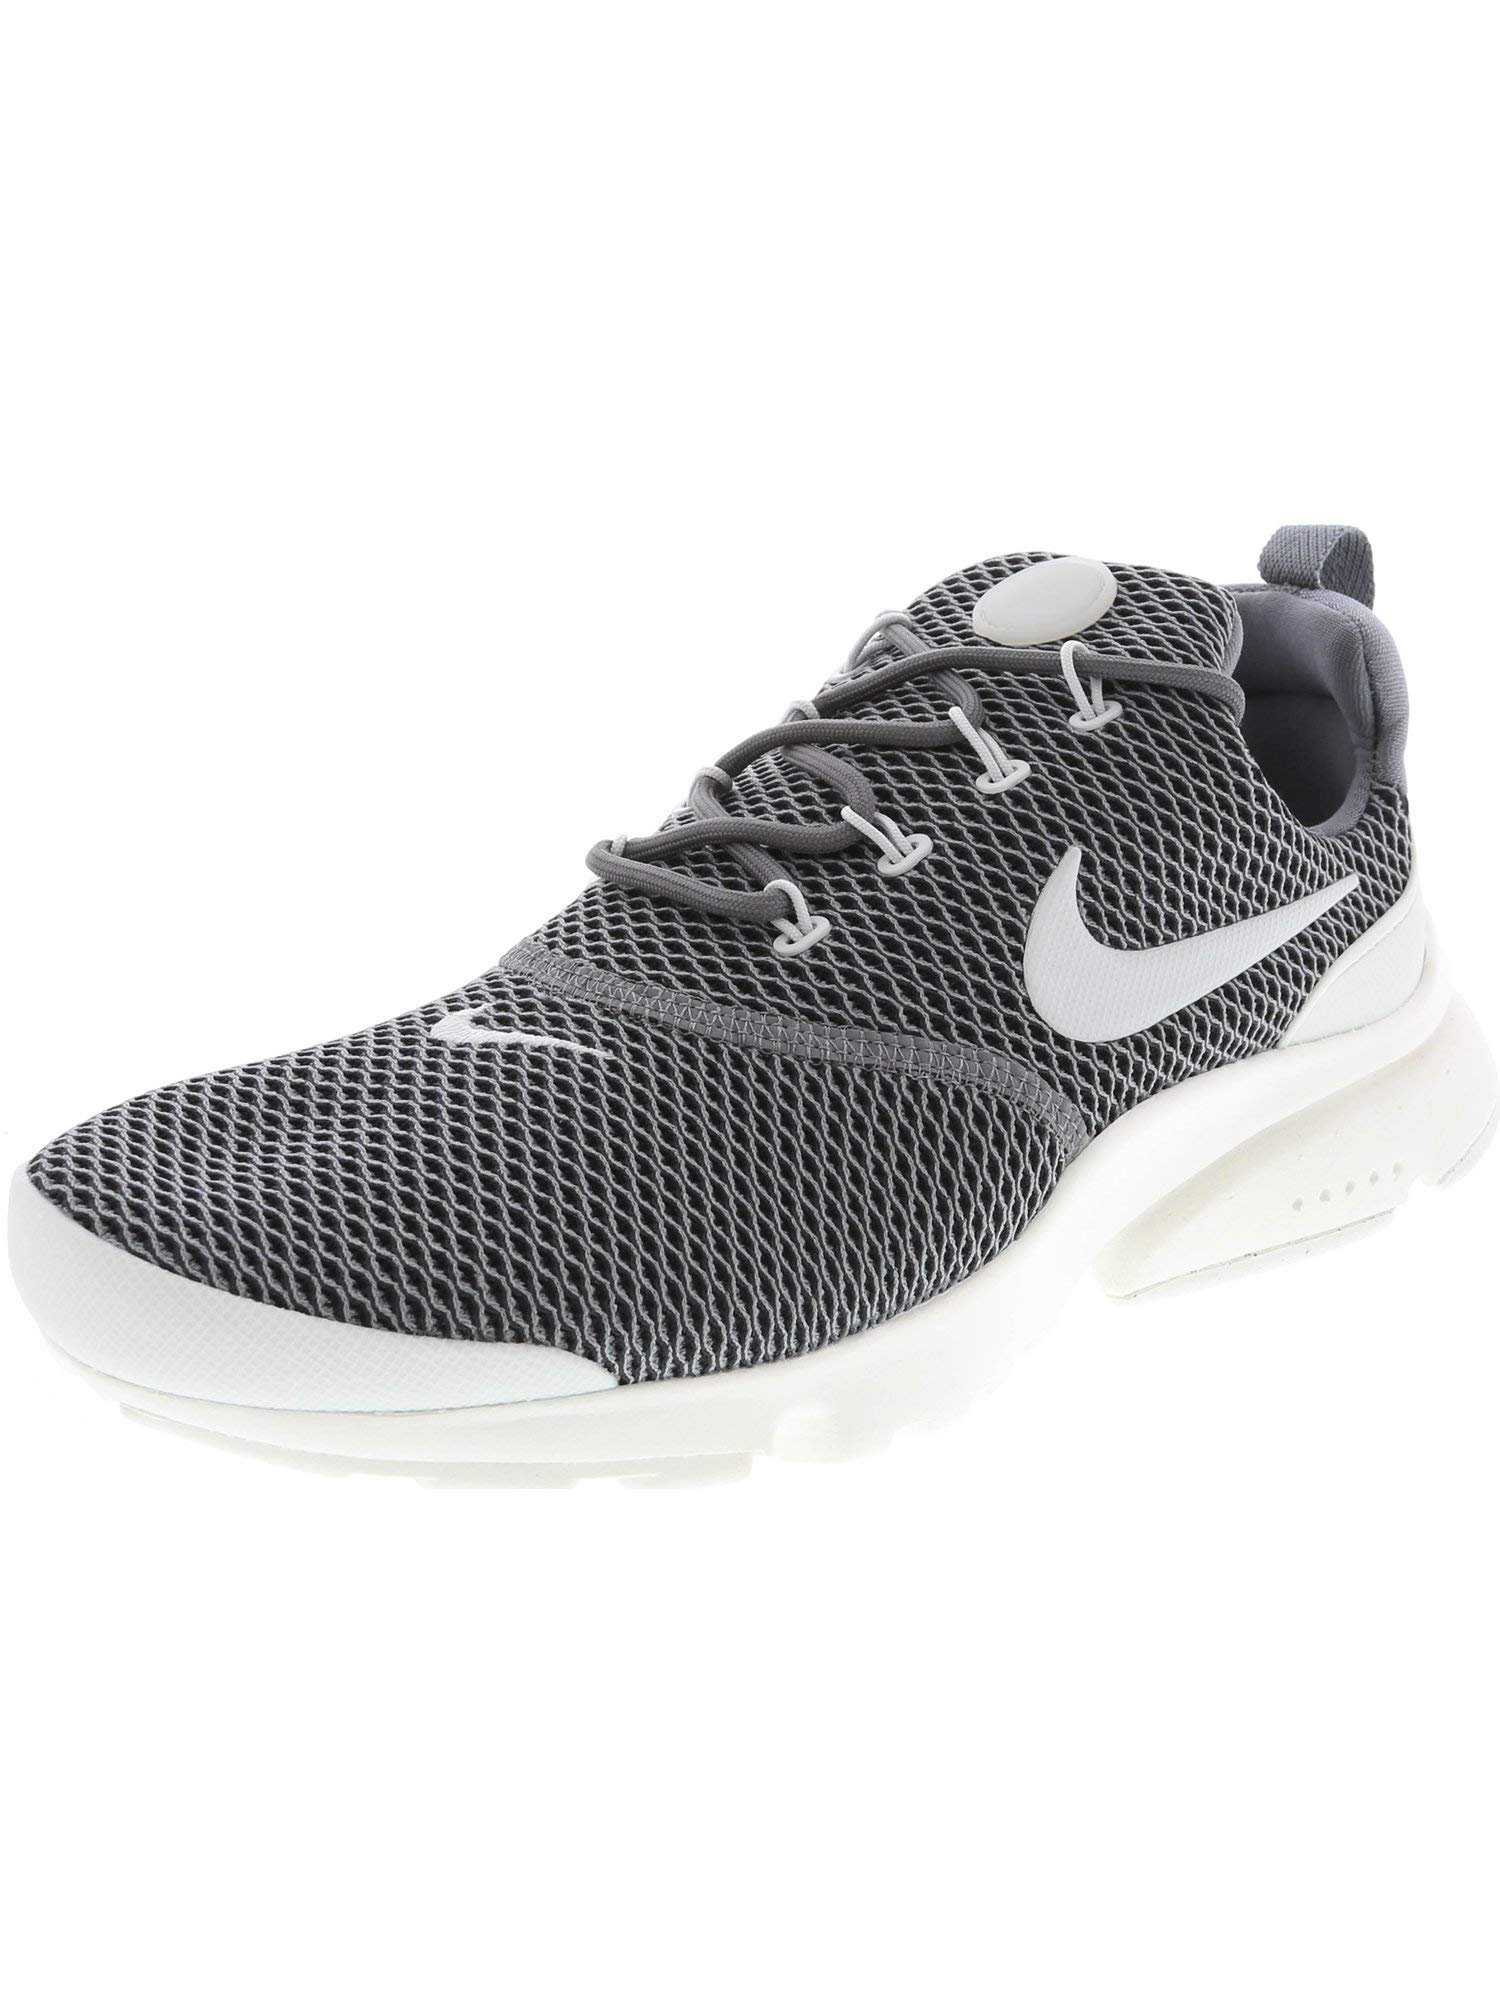 new product 28986 5f8a4 Galleon - Nike Women s Presto Fly Cool Grey Pure Platinum Ankle-High  Running Shoe - 6.5M